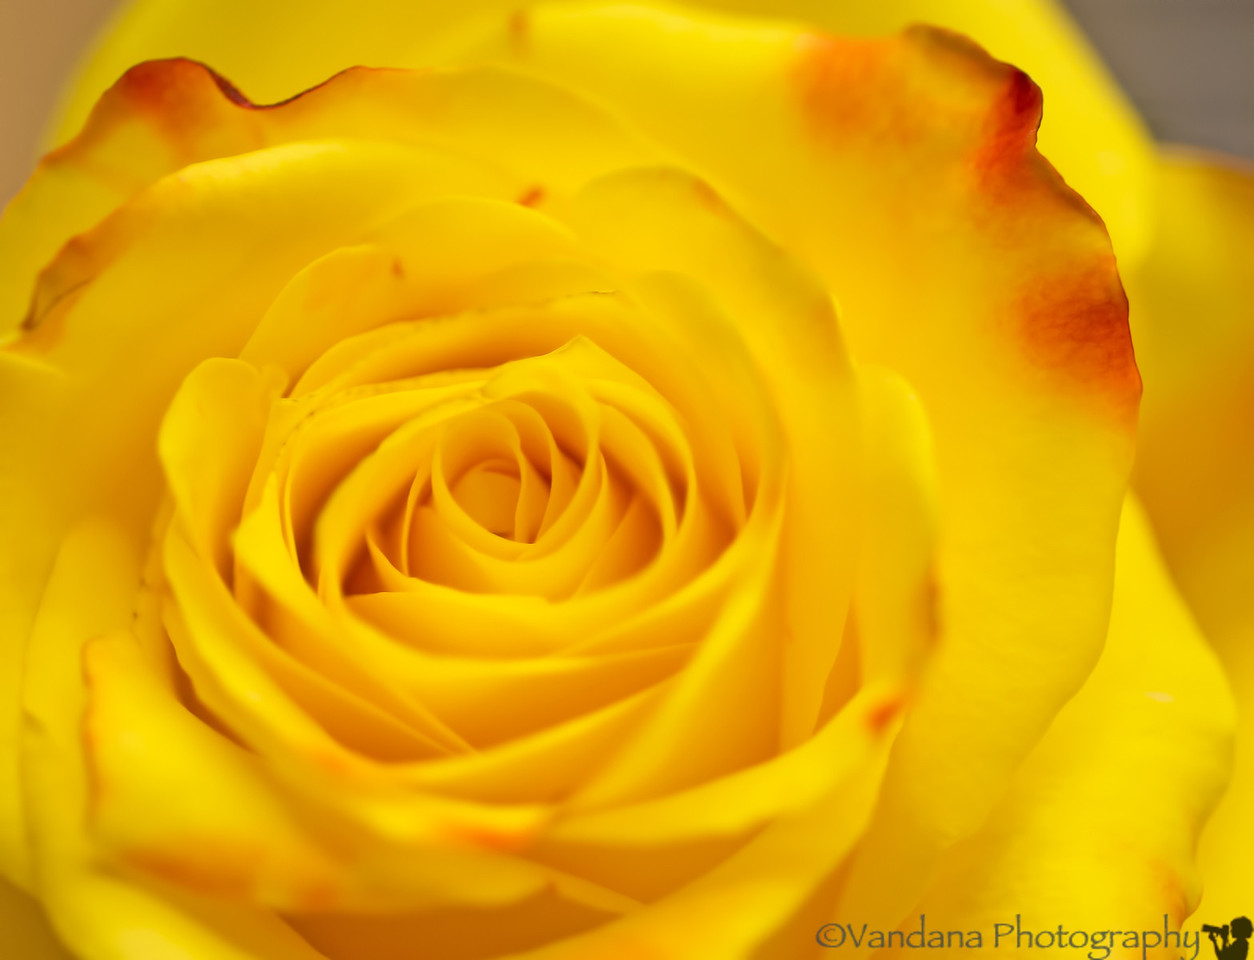 October 13, 2012 - the rose